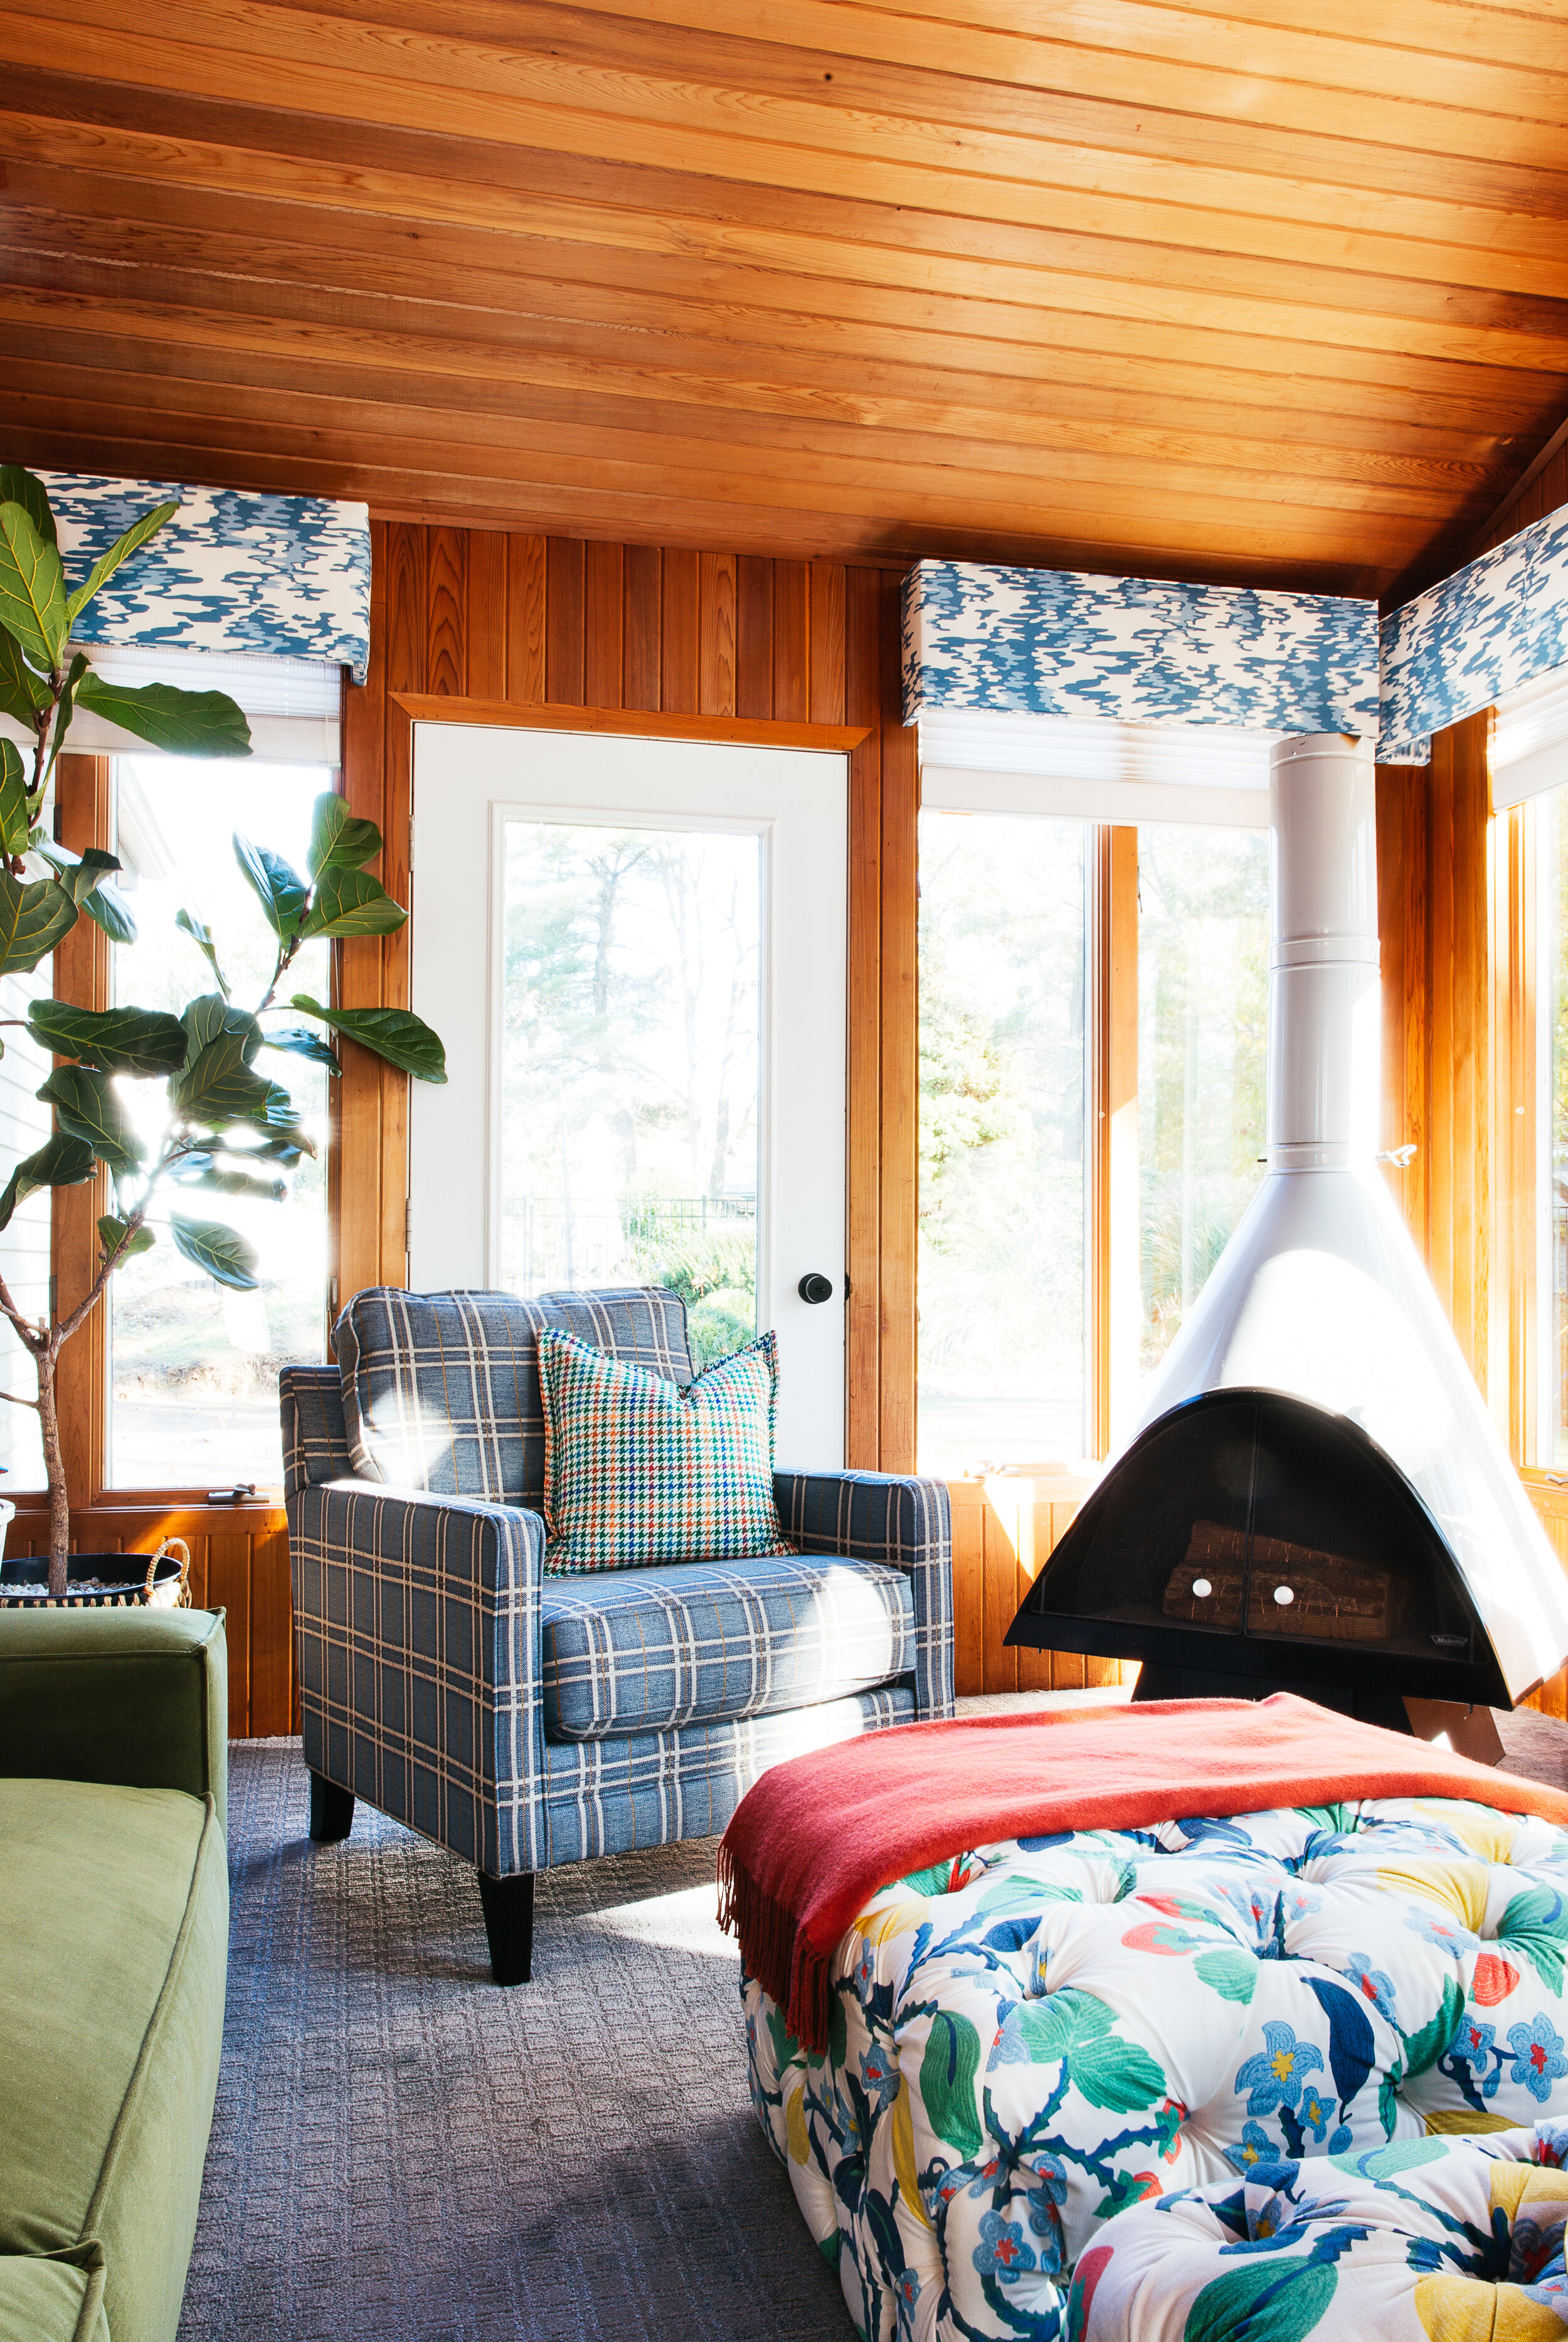 ORC sunroom fireplace and plaid chair Raymour and Flanigan modern mid century design by TheRathProject.jpg